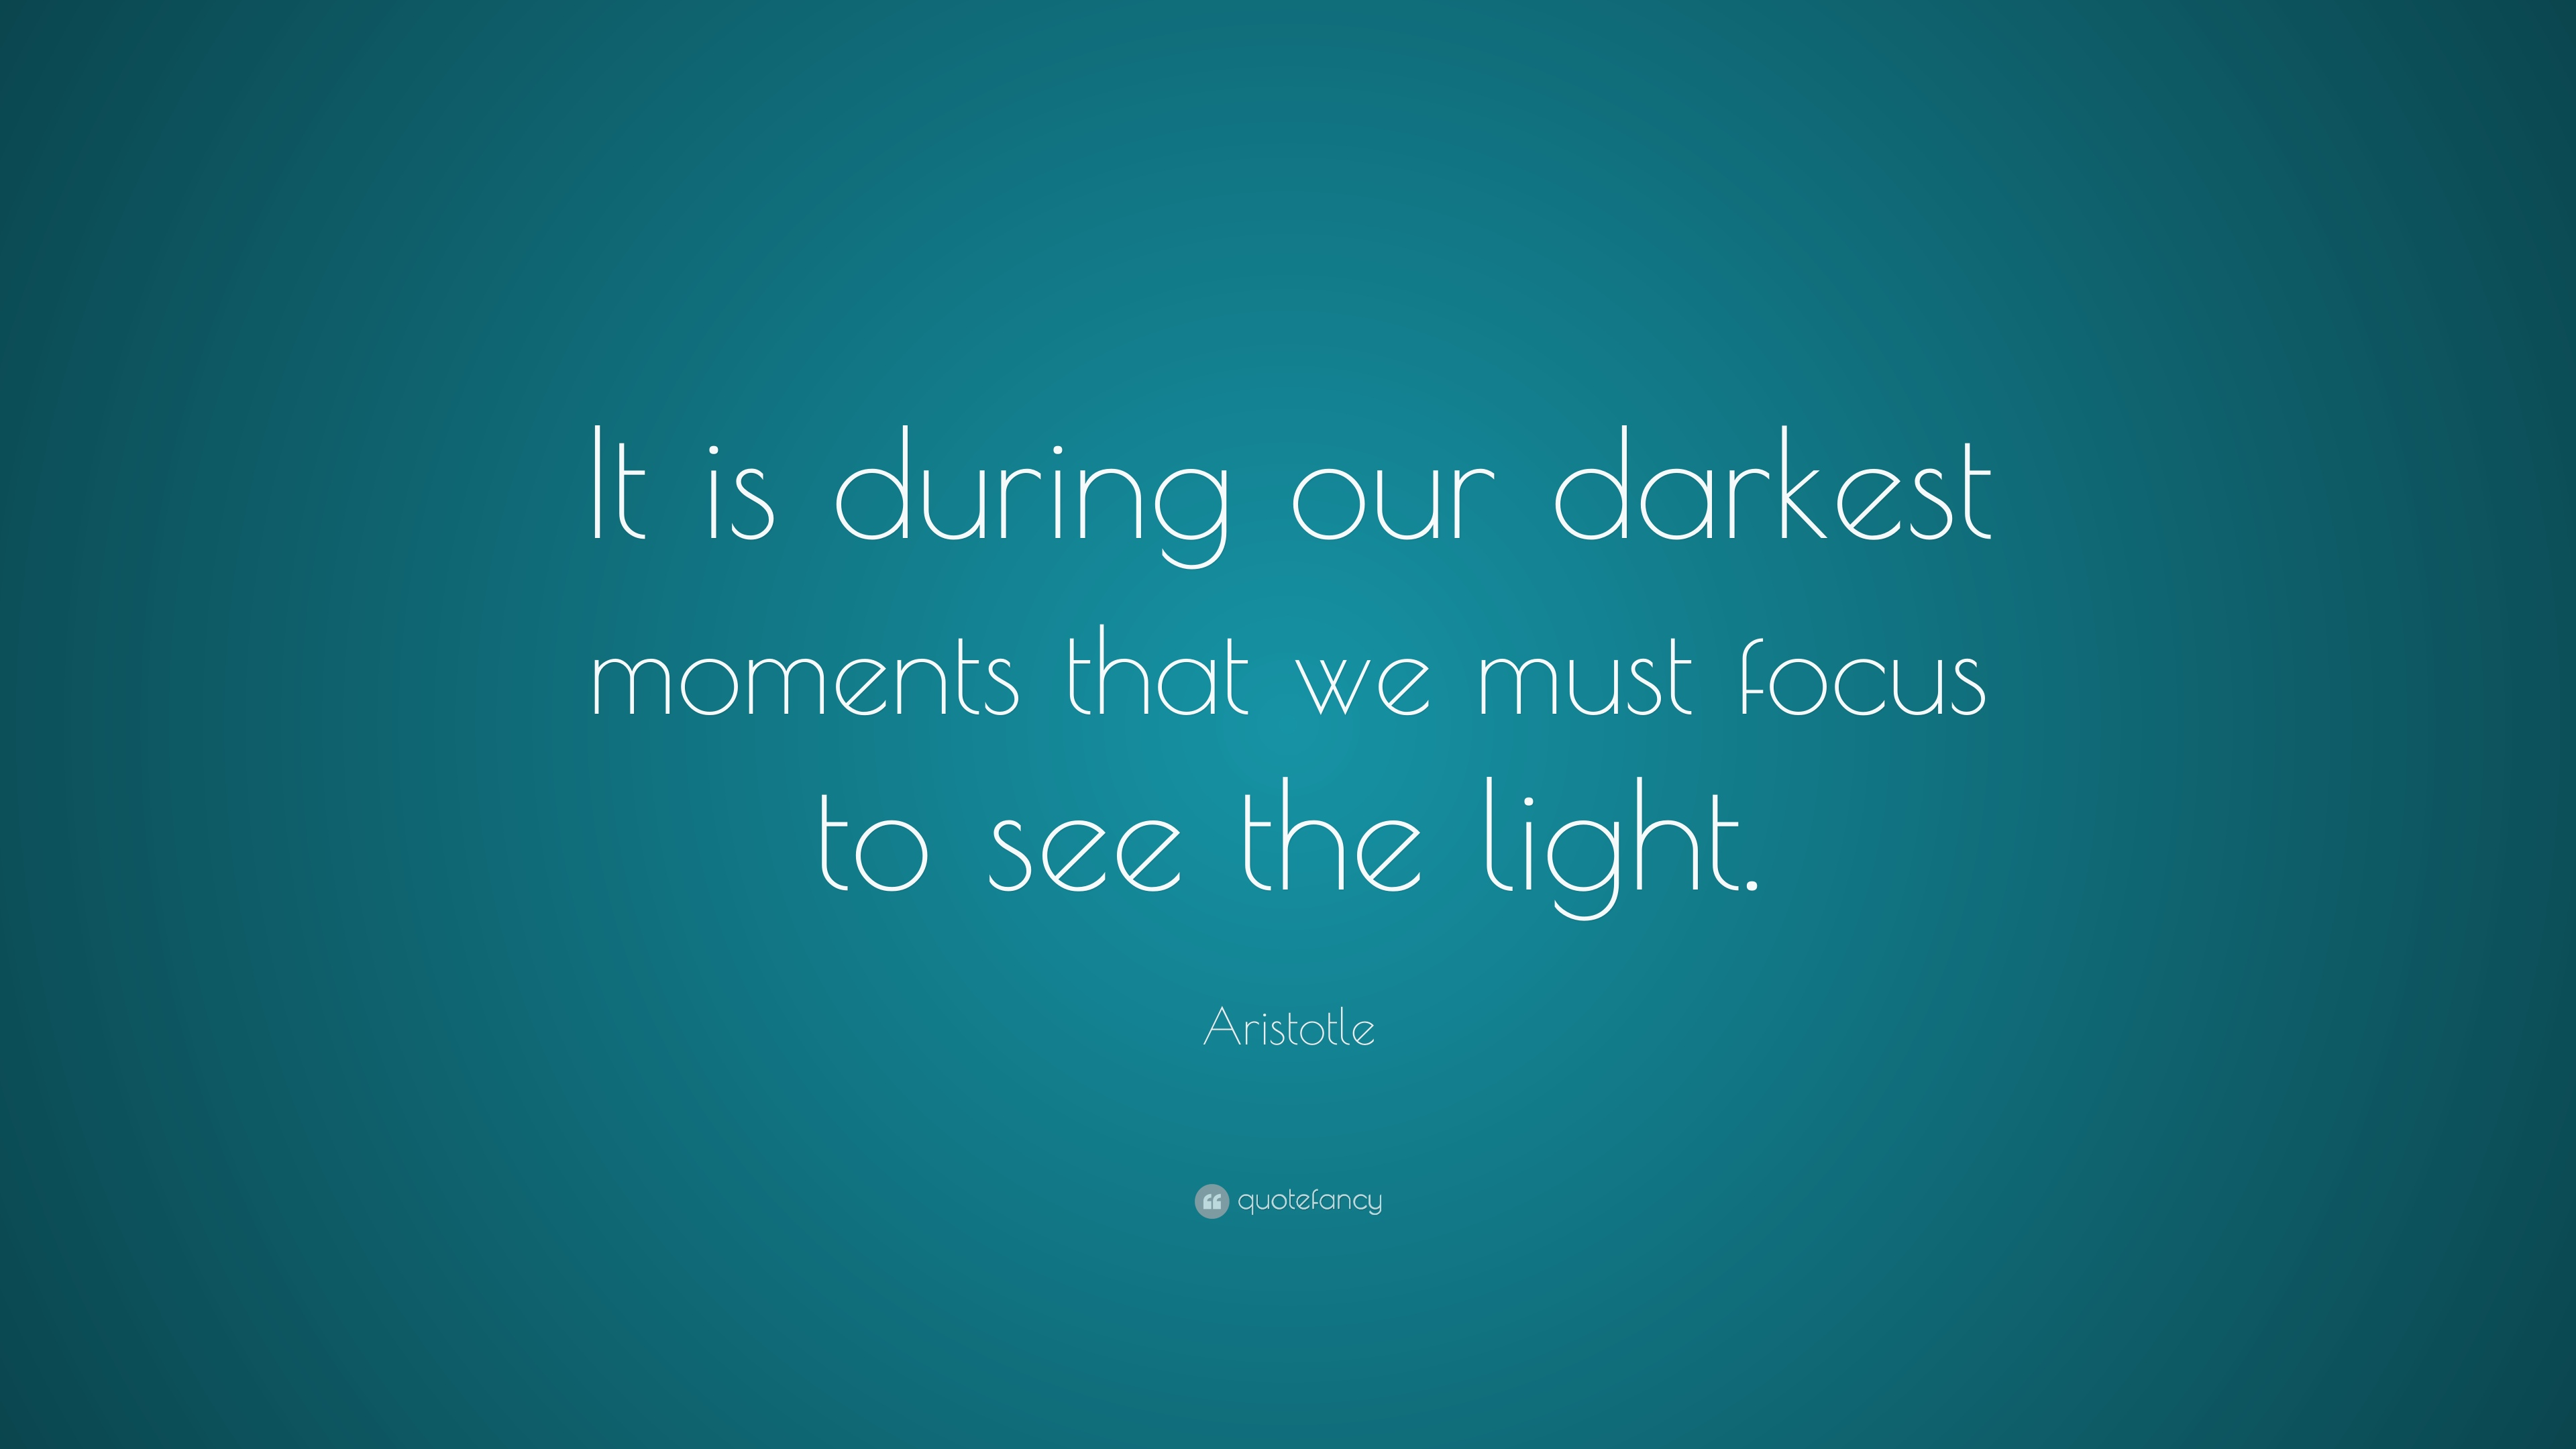 Aristotle Quotes Wallpaper Aristotle Quote It Is During Our Darkest Moments That We